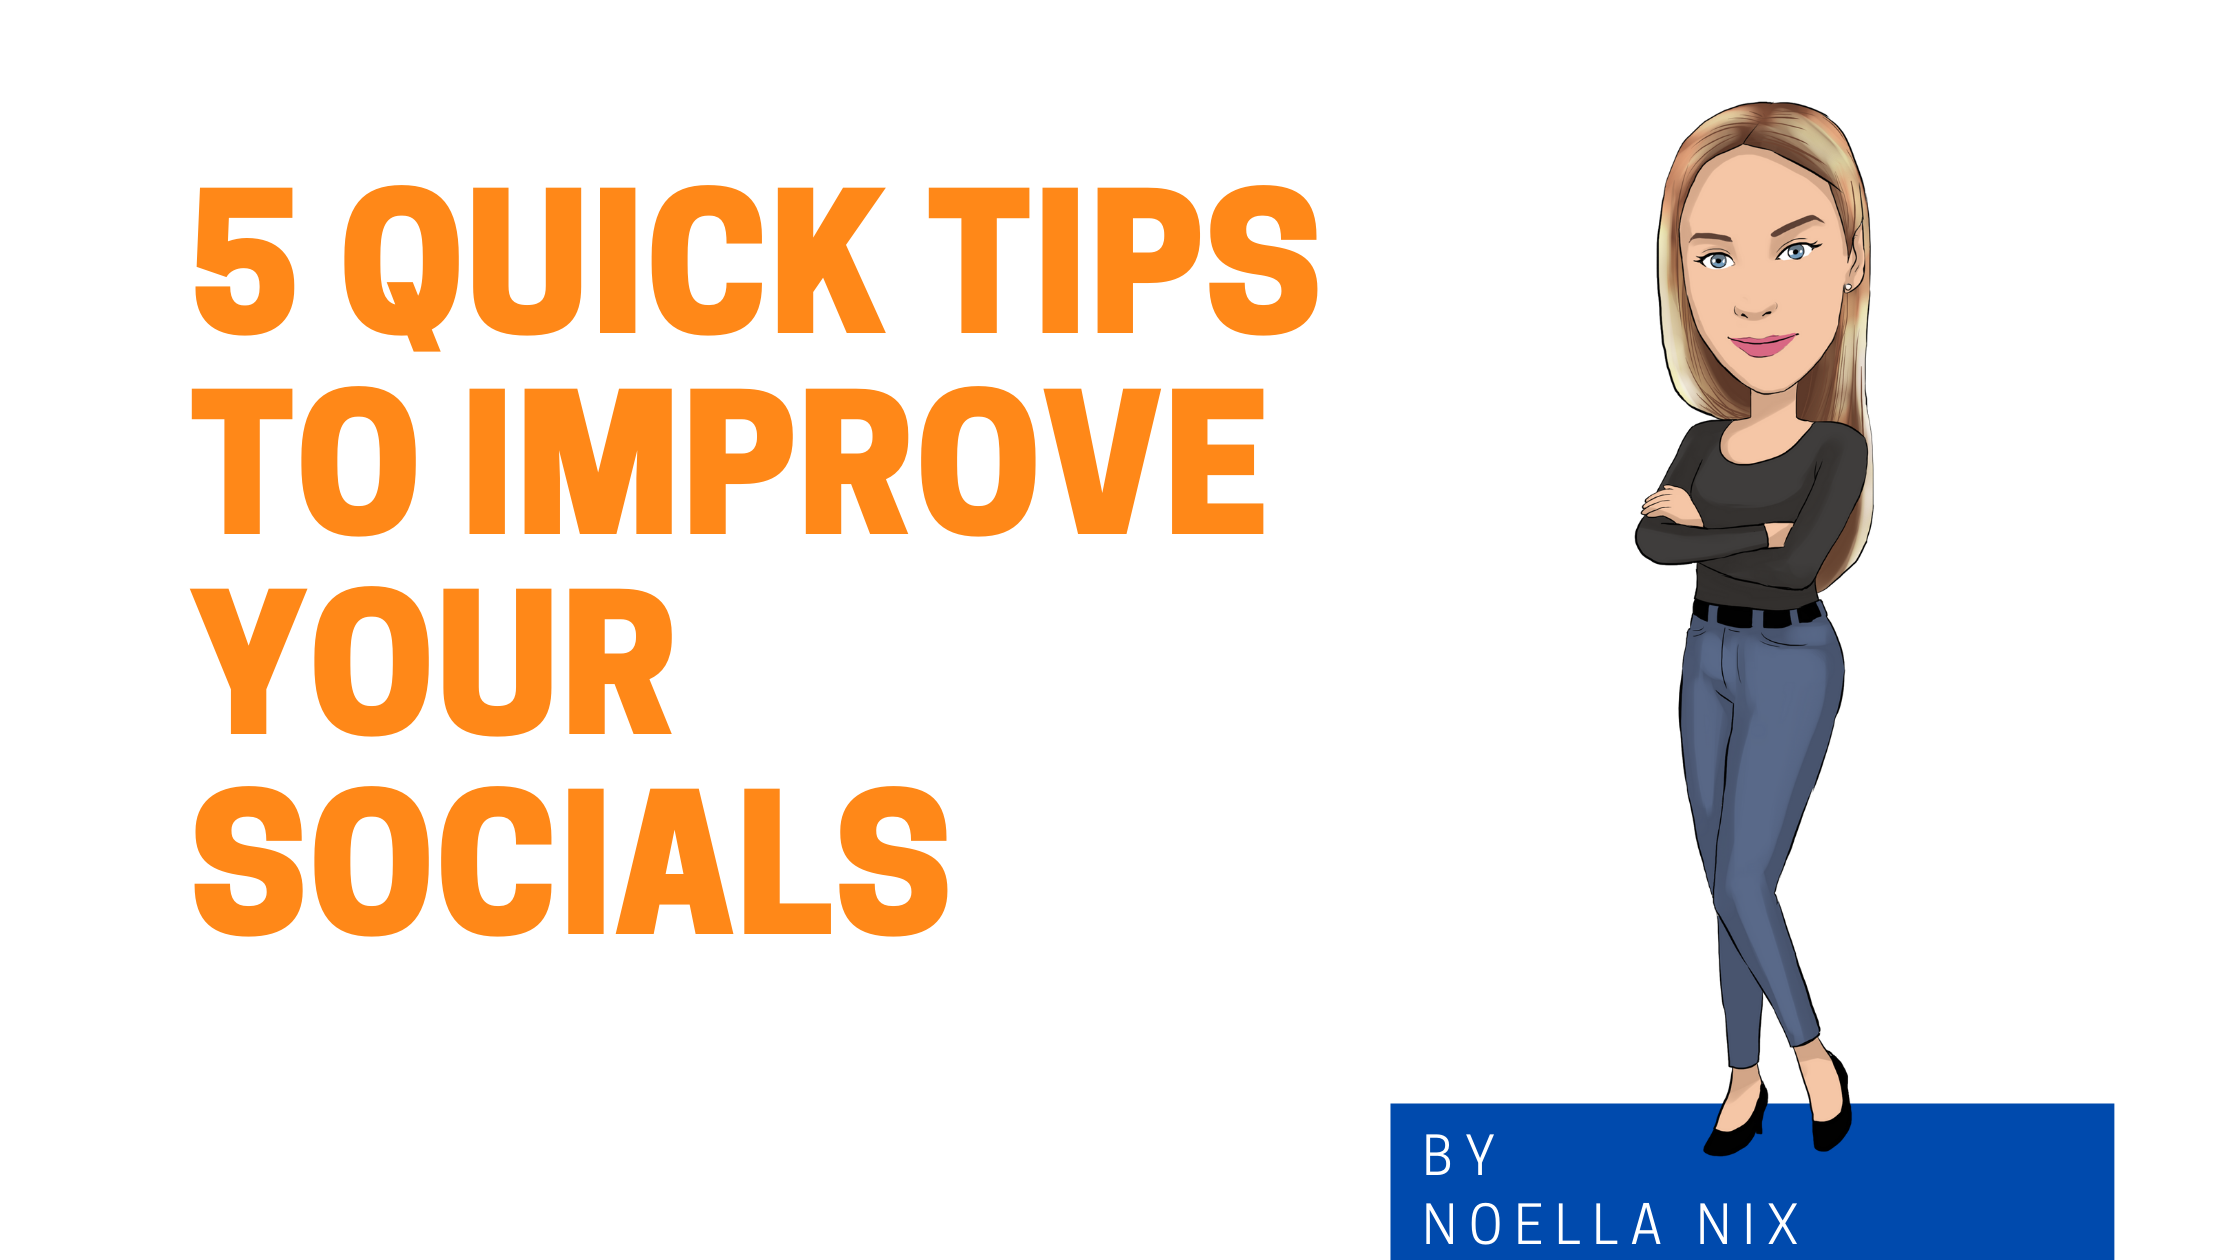 5 Quick Tips to Improve Your Socials Image graphic